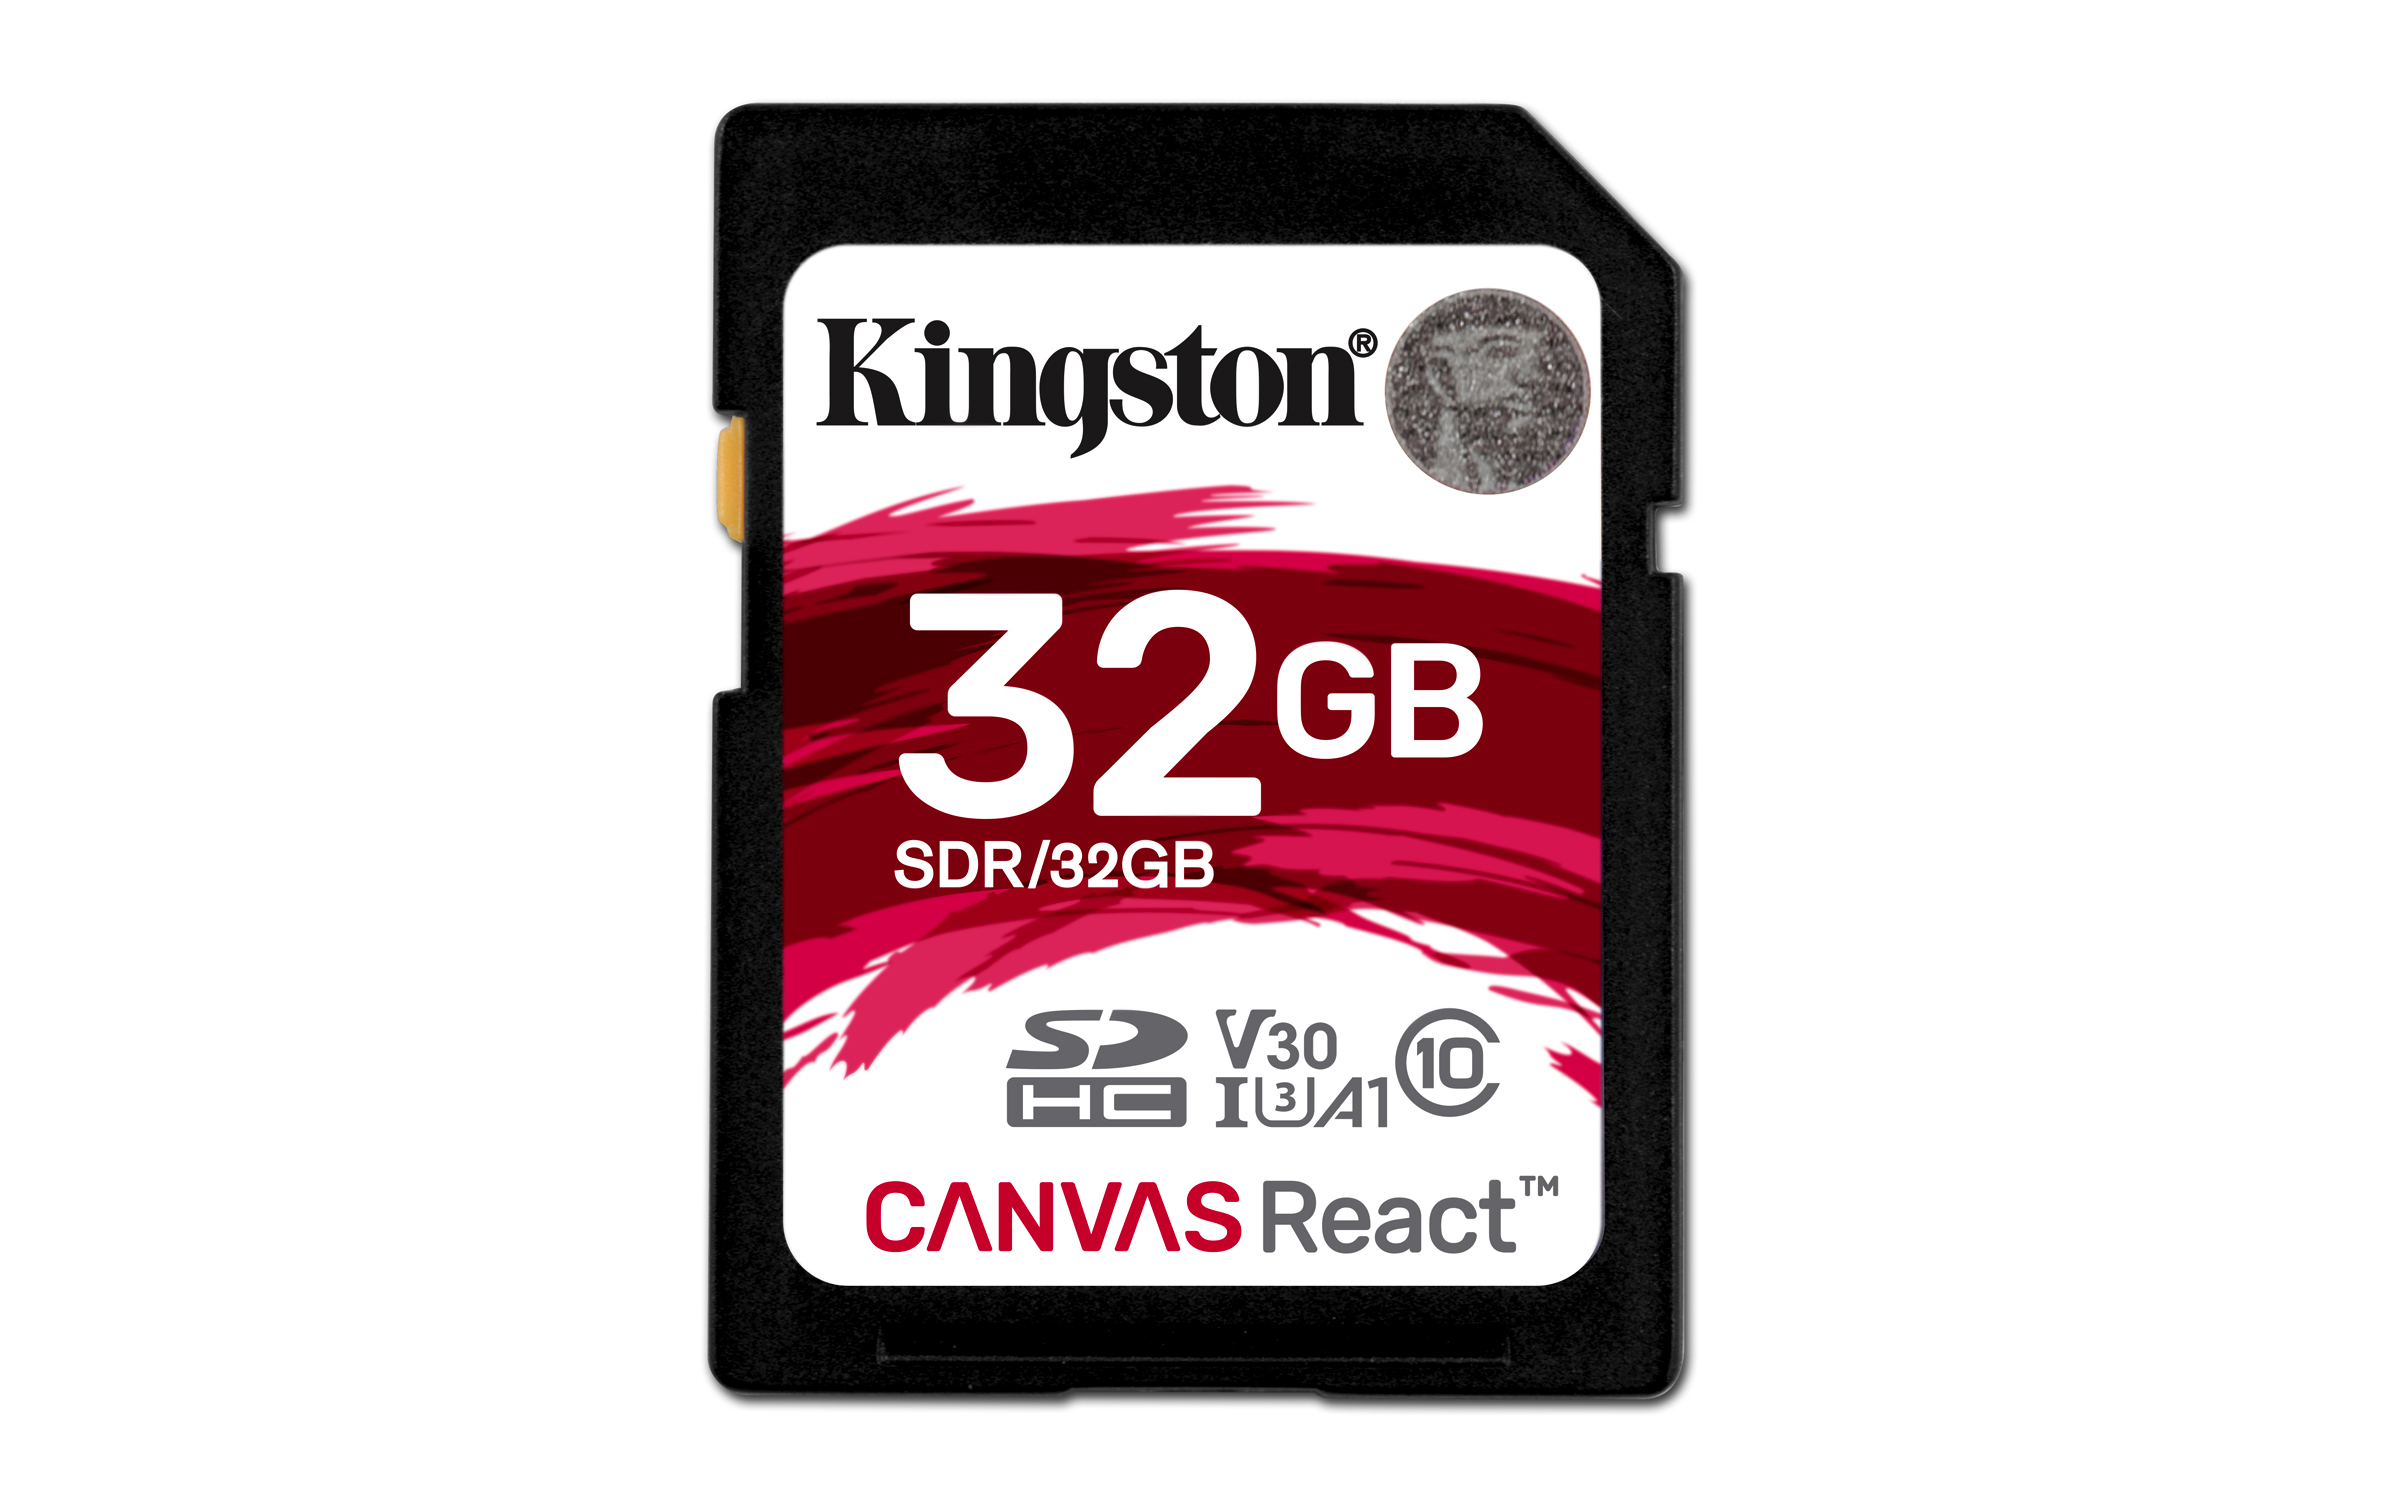 SD CANVAS REACT 32GB SDHC UHS-I CLASE 10 MEMORIA FLASH